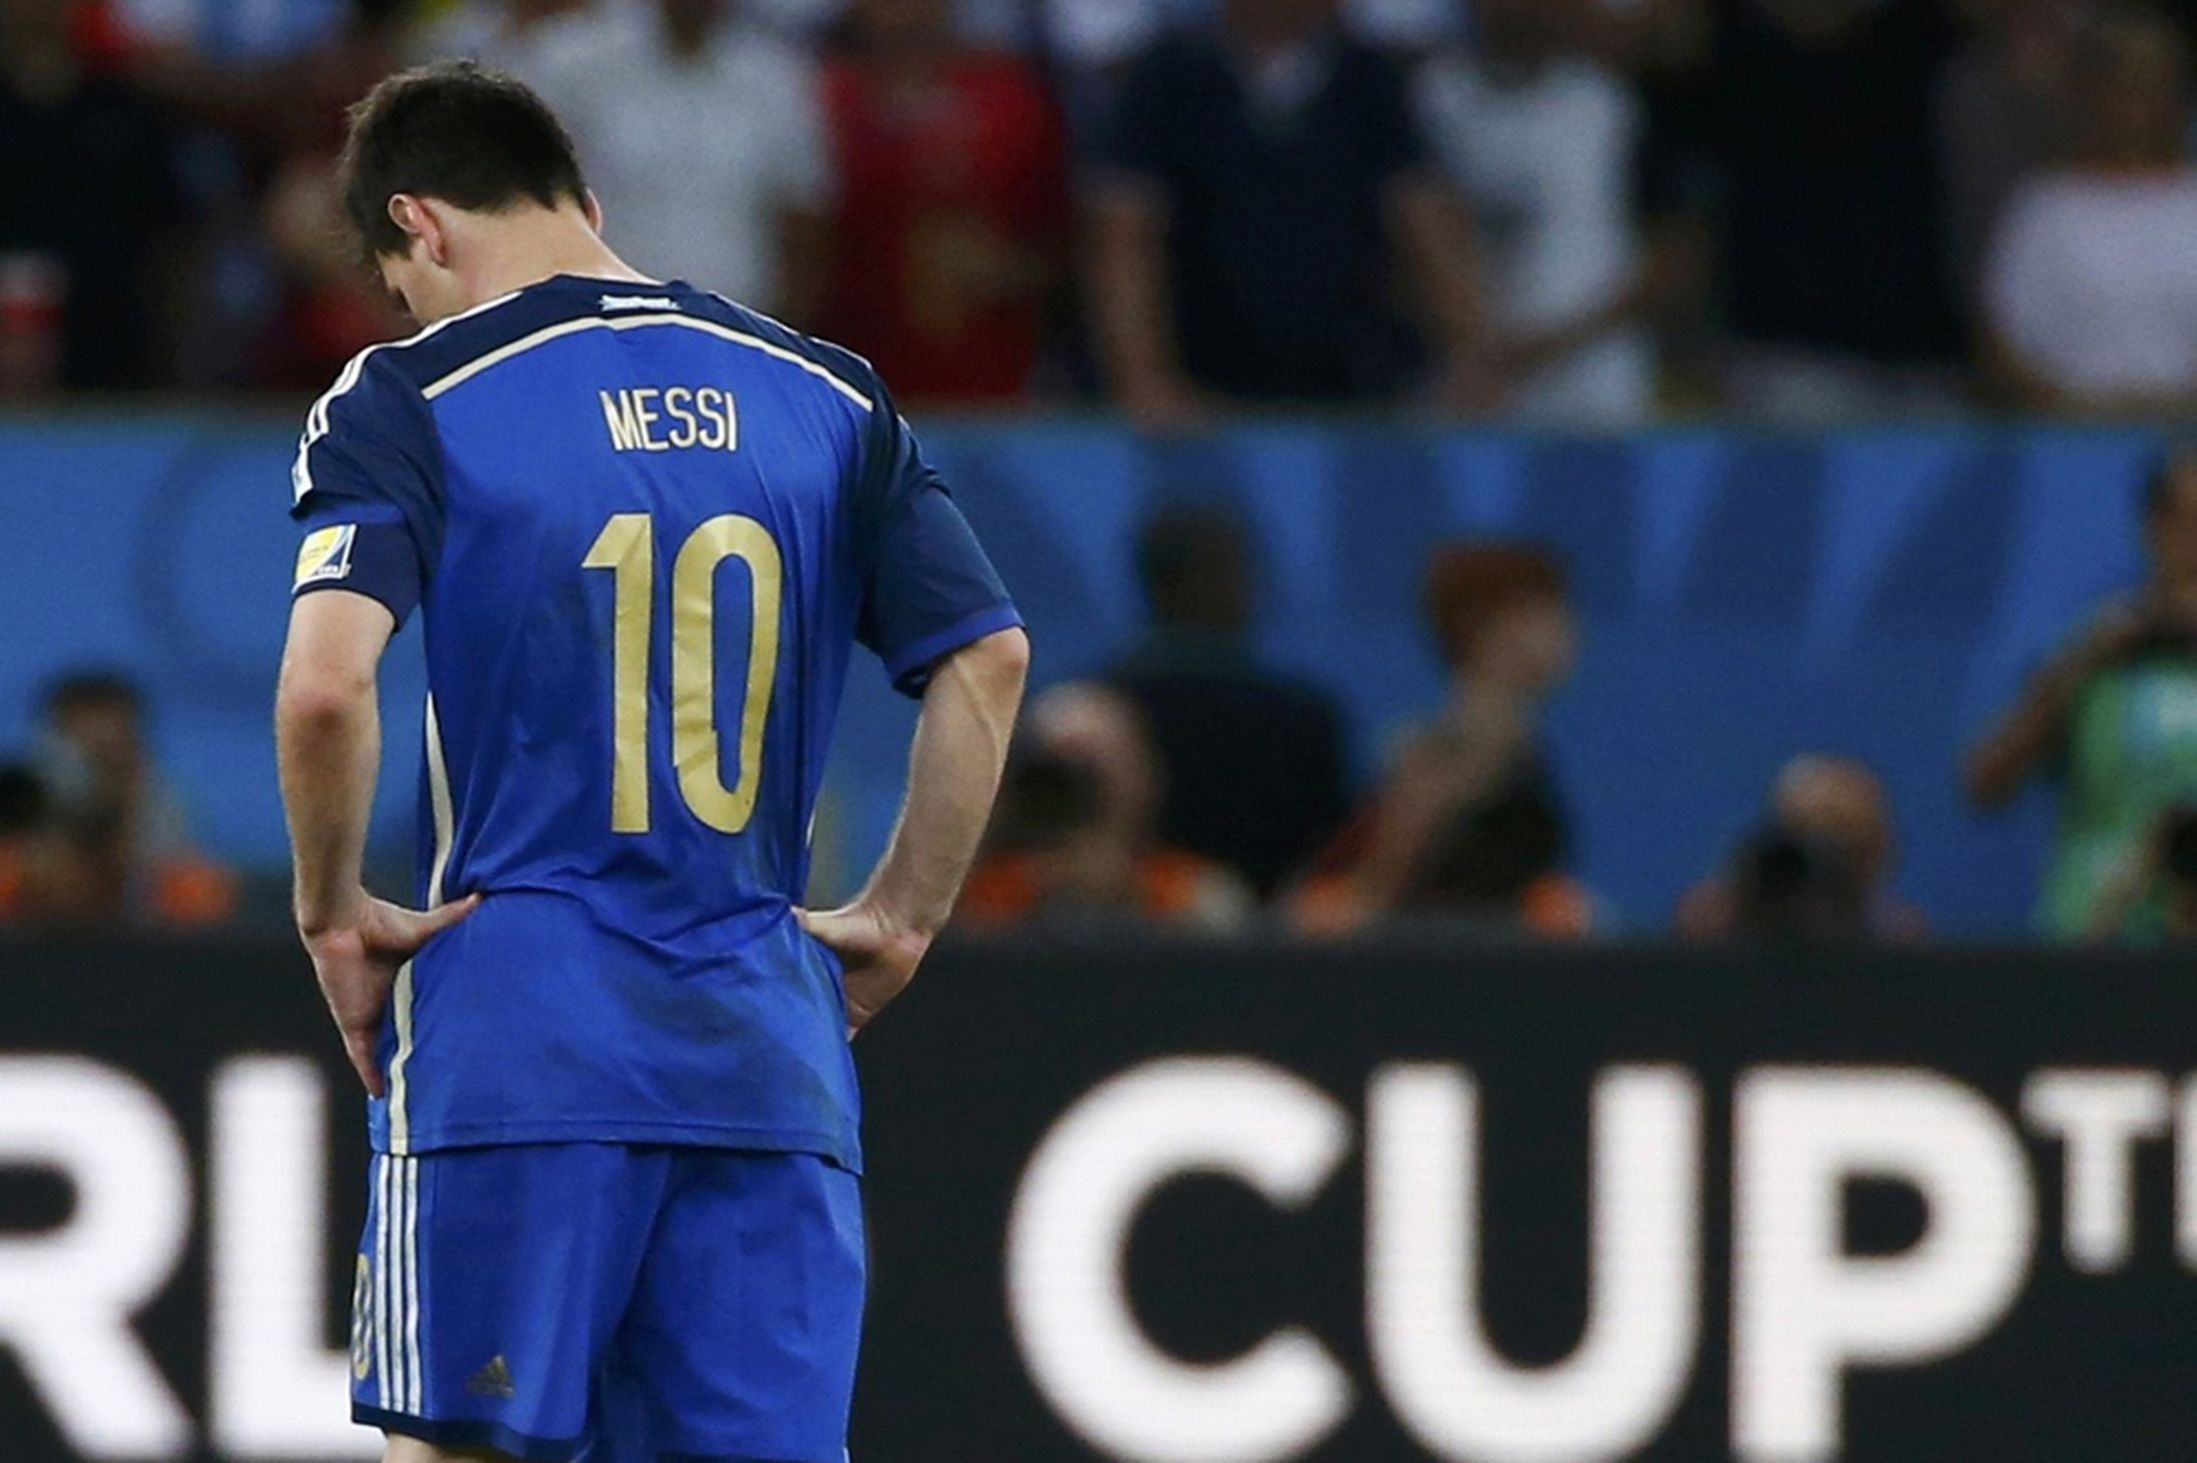 A dejected Lionel Messi after Argentina lost the World Cup final to Germany 10149449c